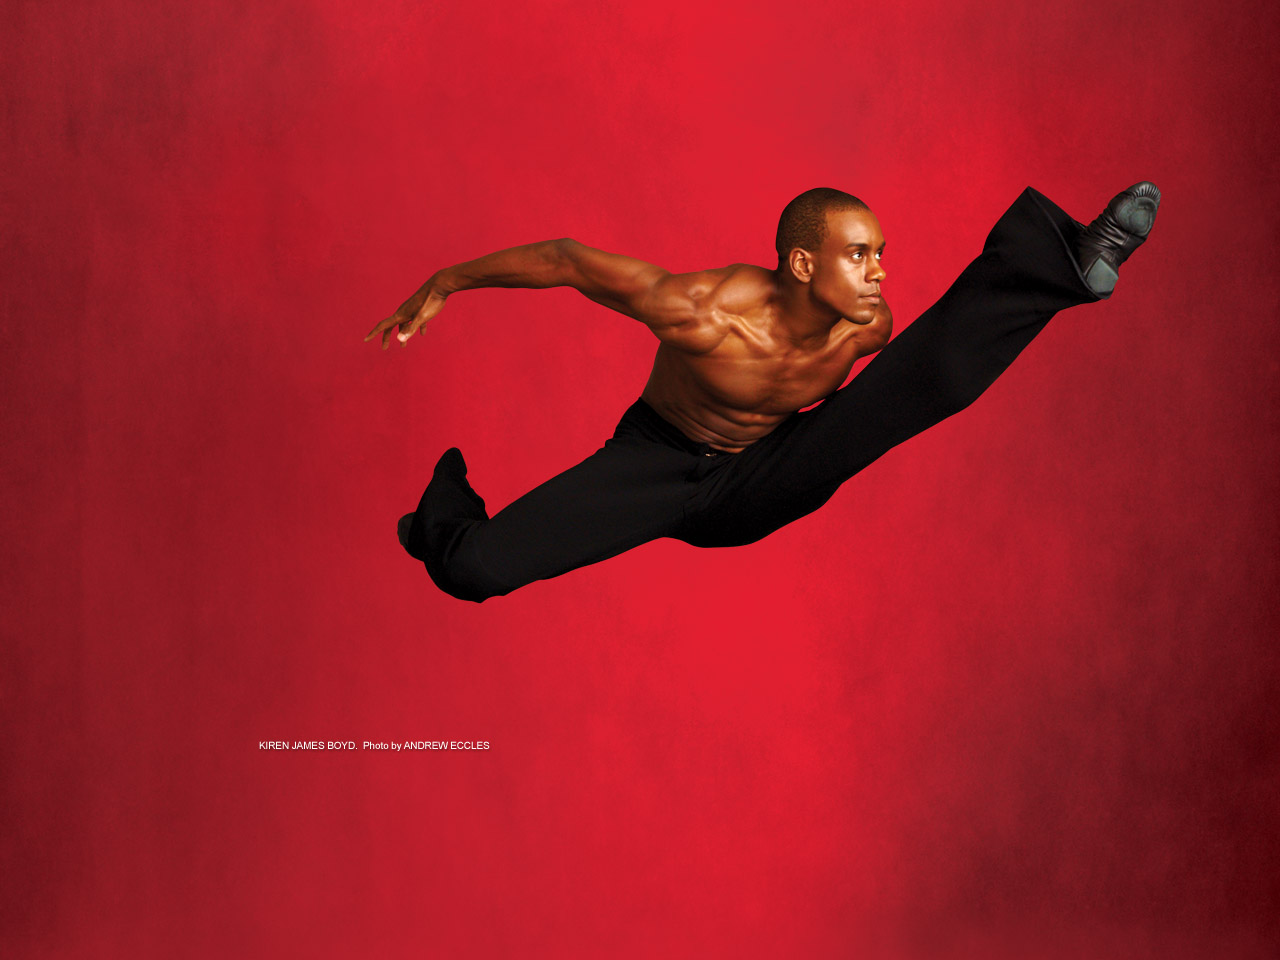 ailey single men Standing up for fairness and equal treatment of all people regardless of marital status since 1998.